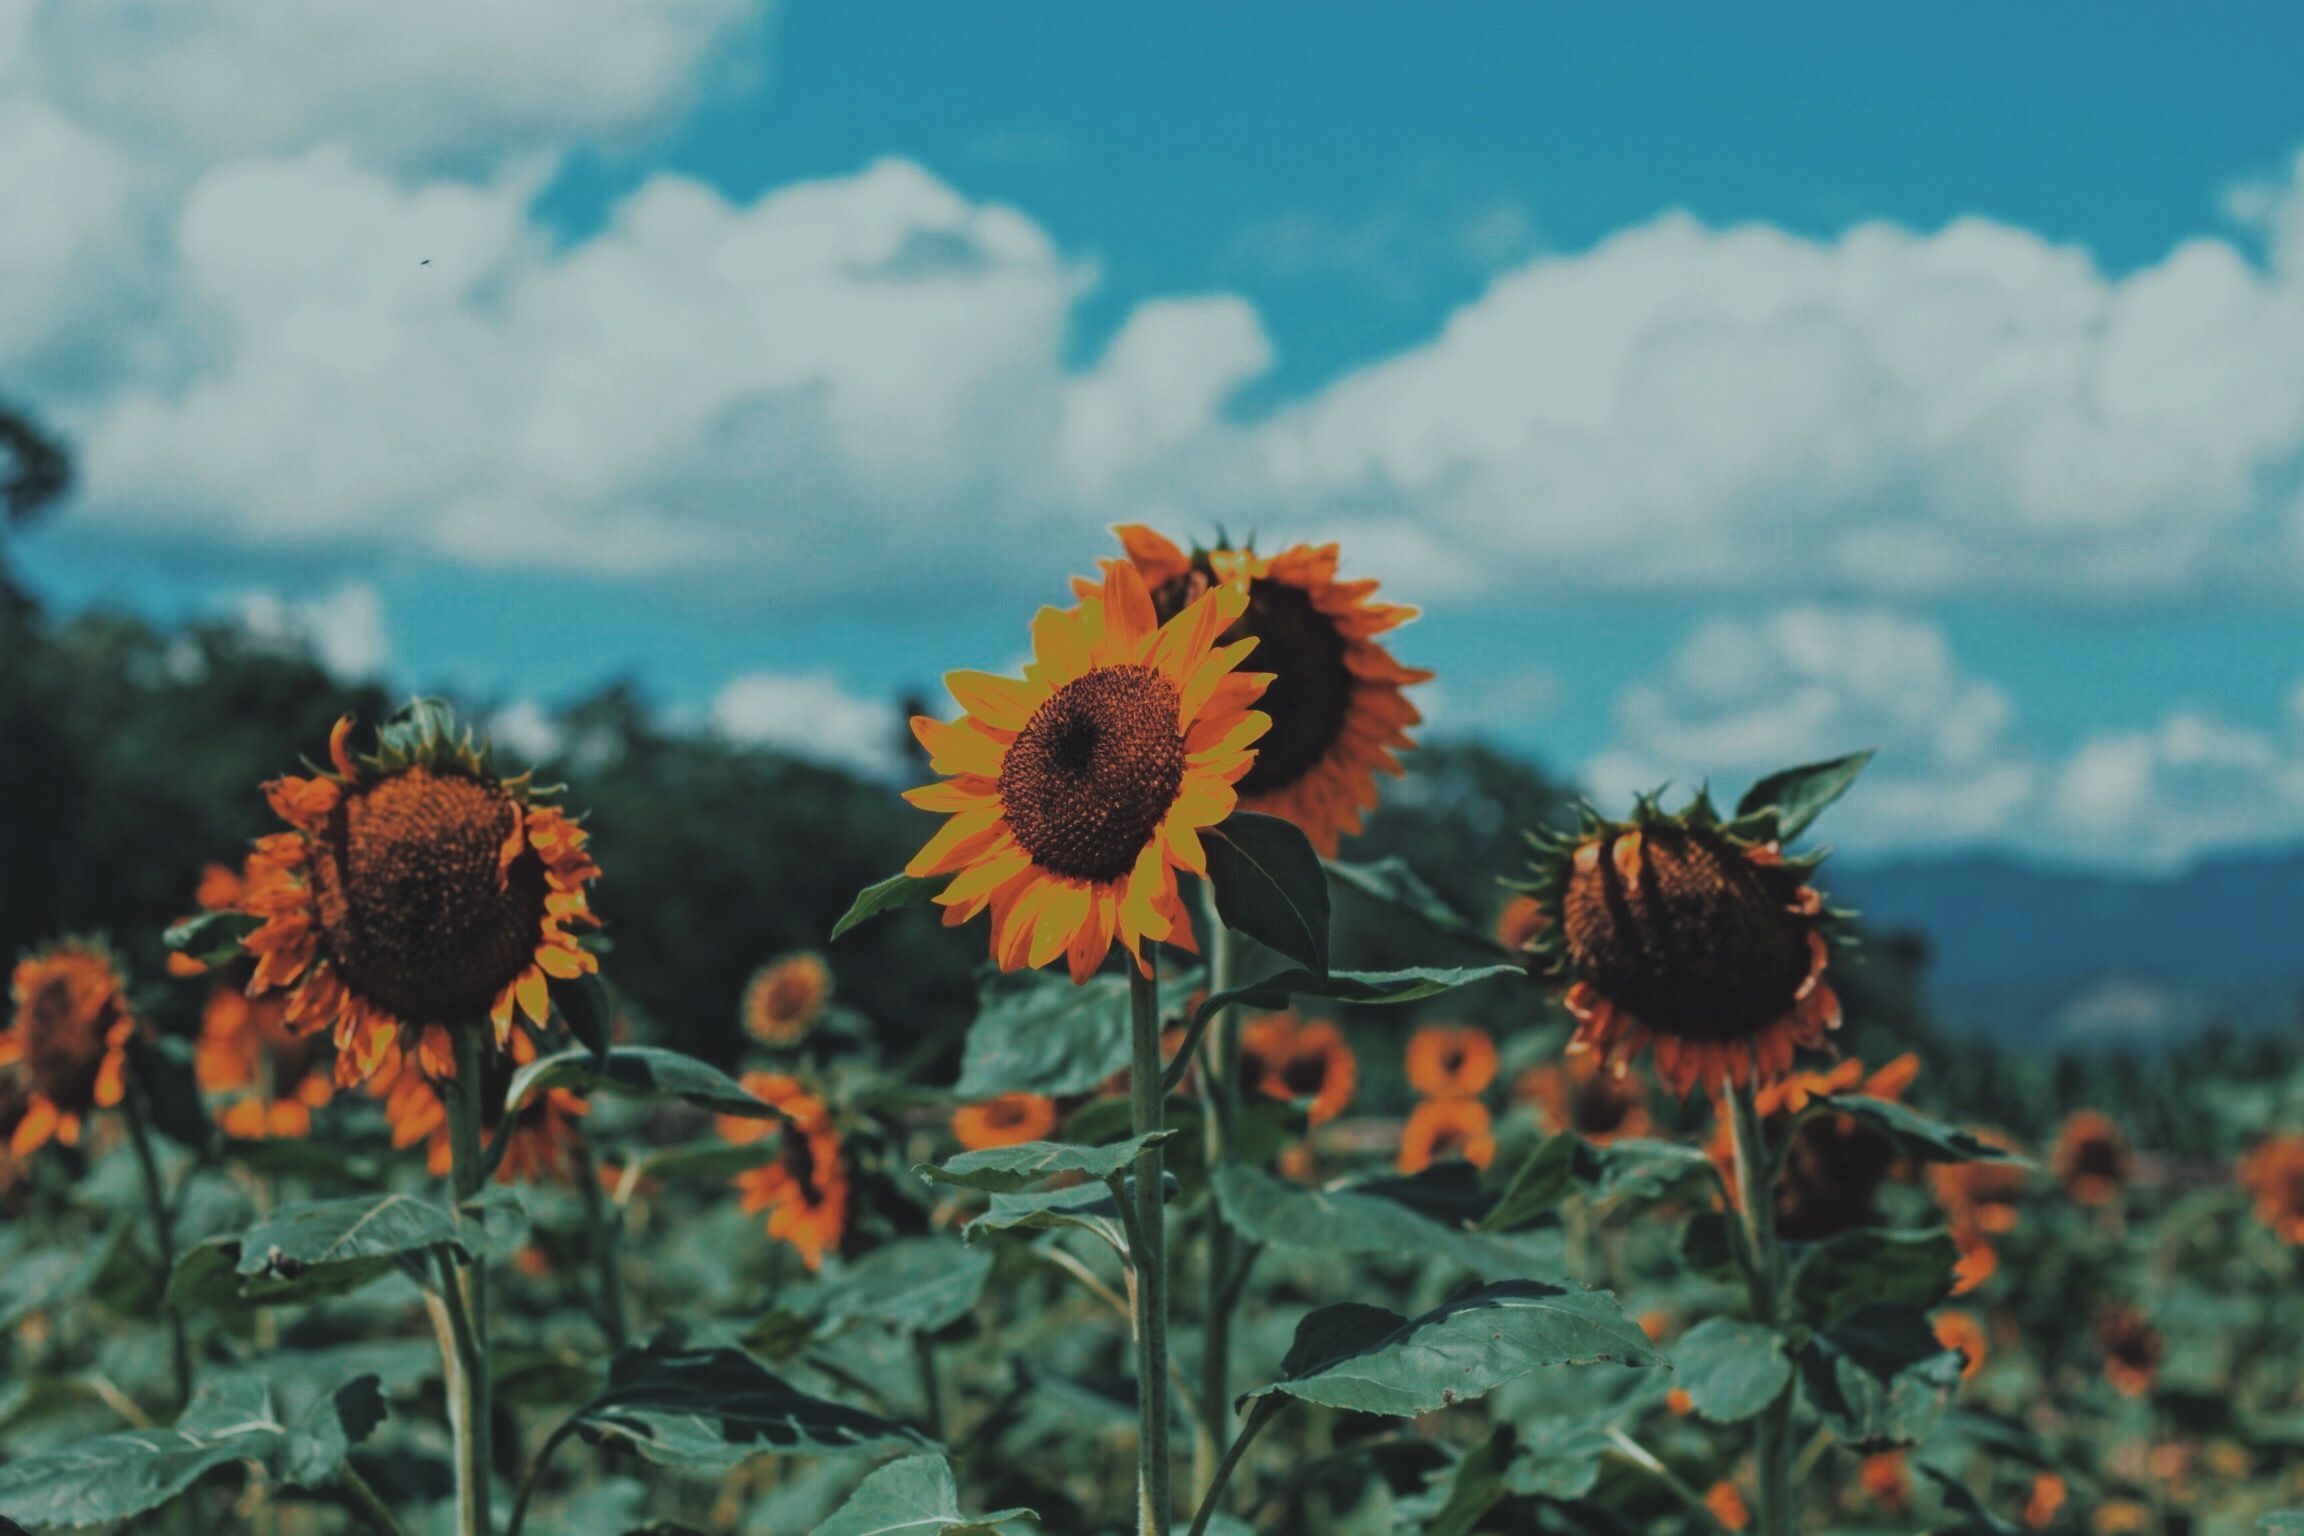 Tupi South Cotabato Philippines Sunflowers Sunflowersph